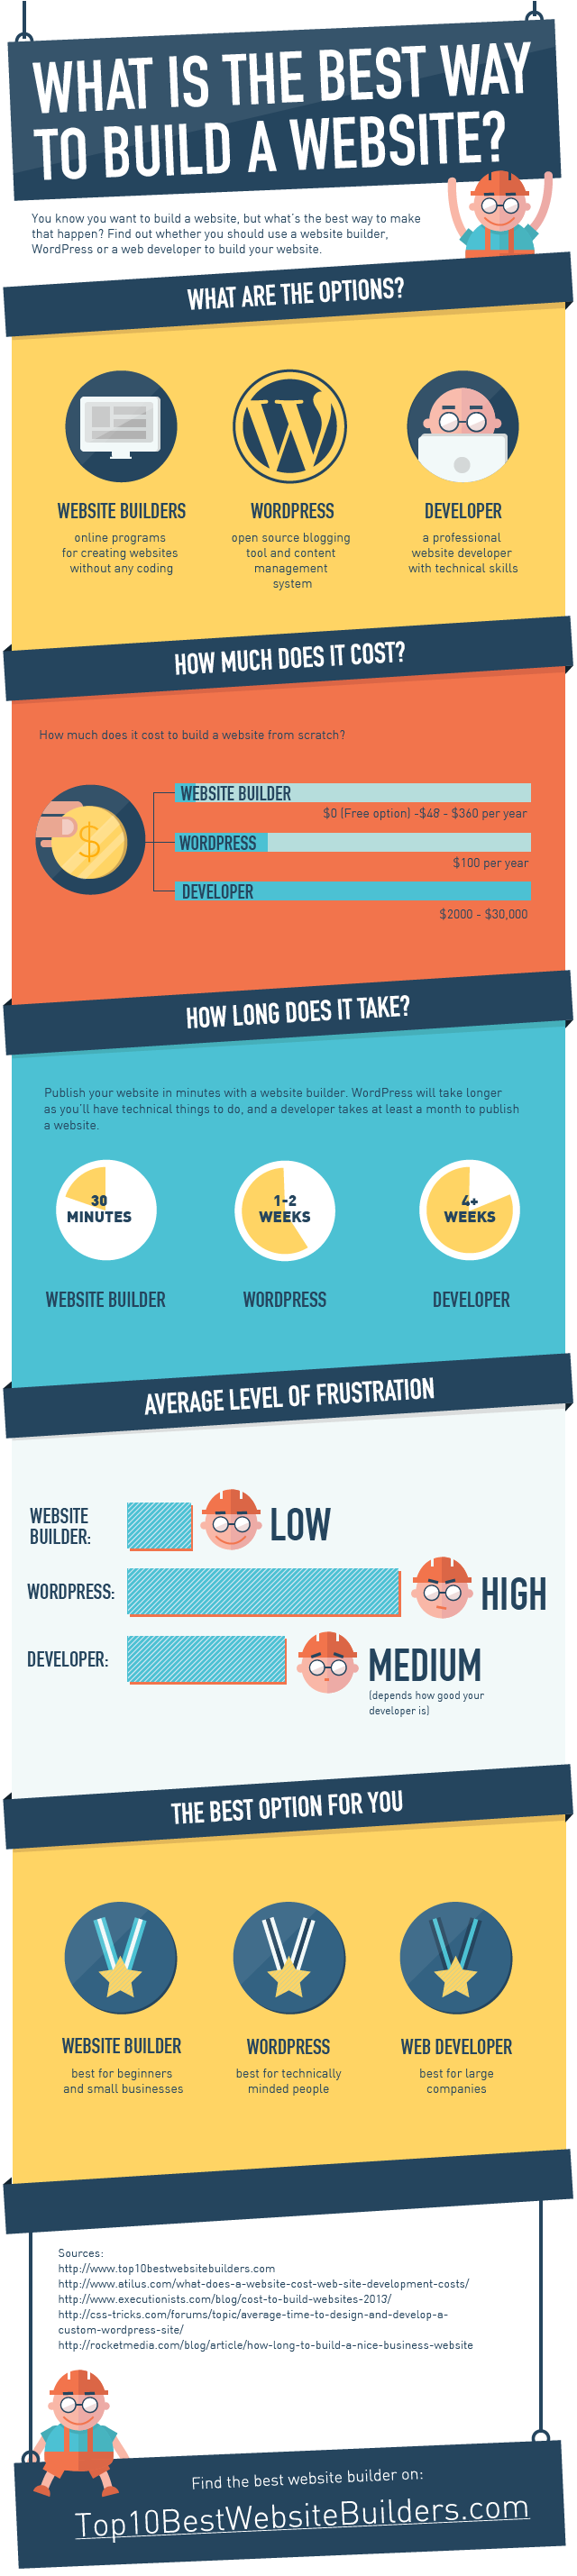 best way to build a website infographic